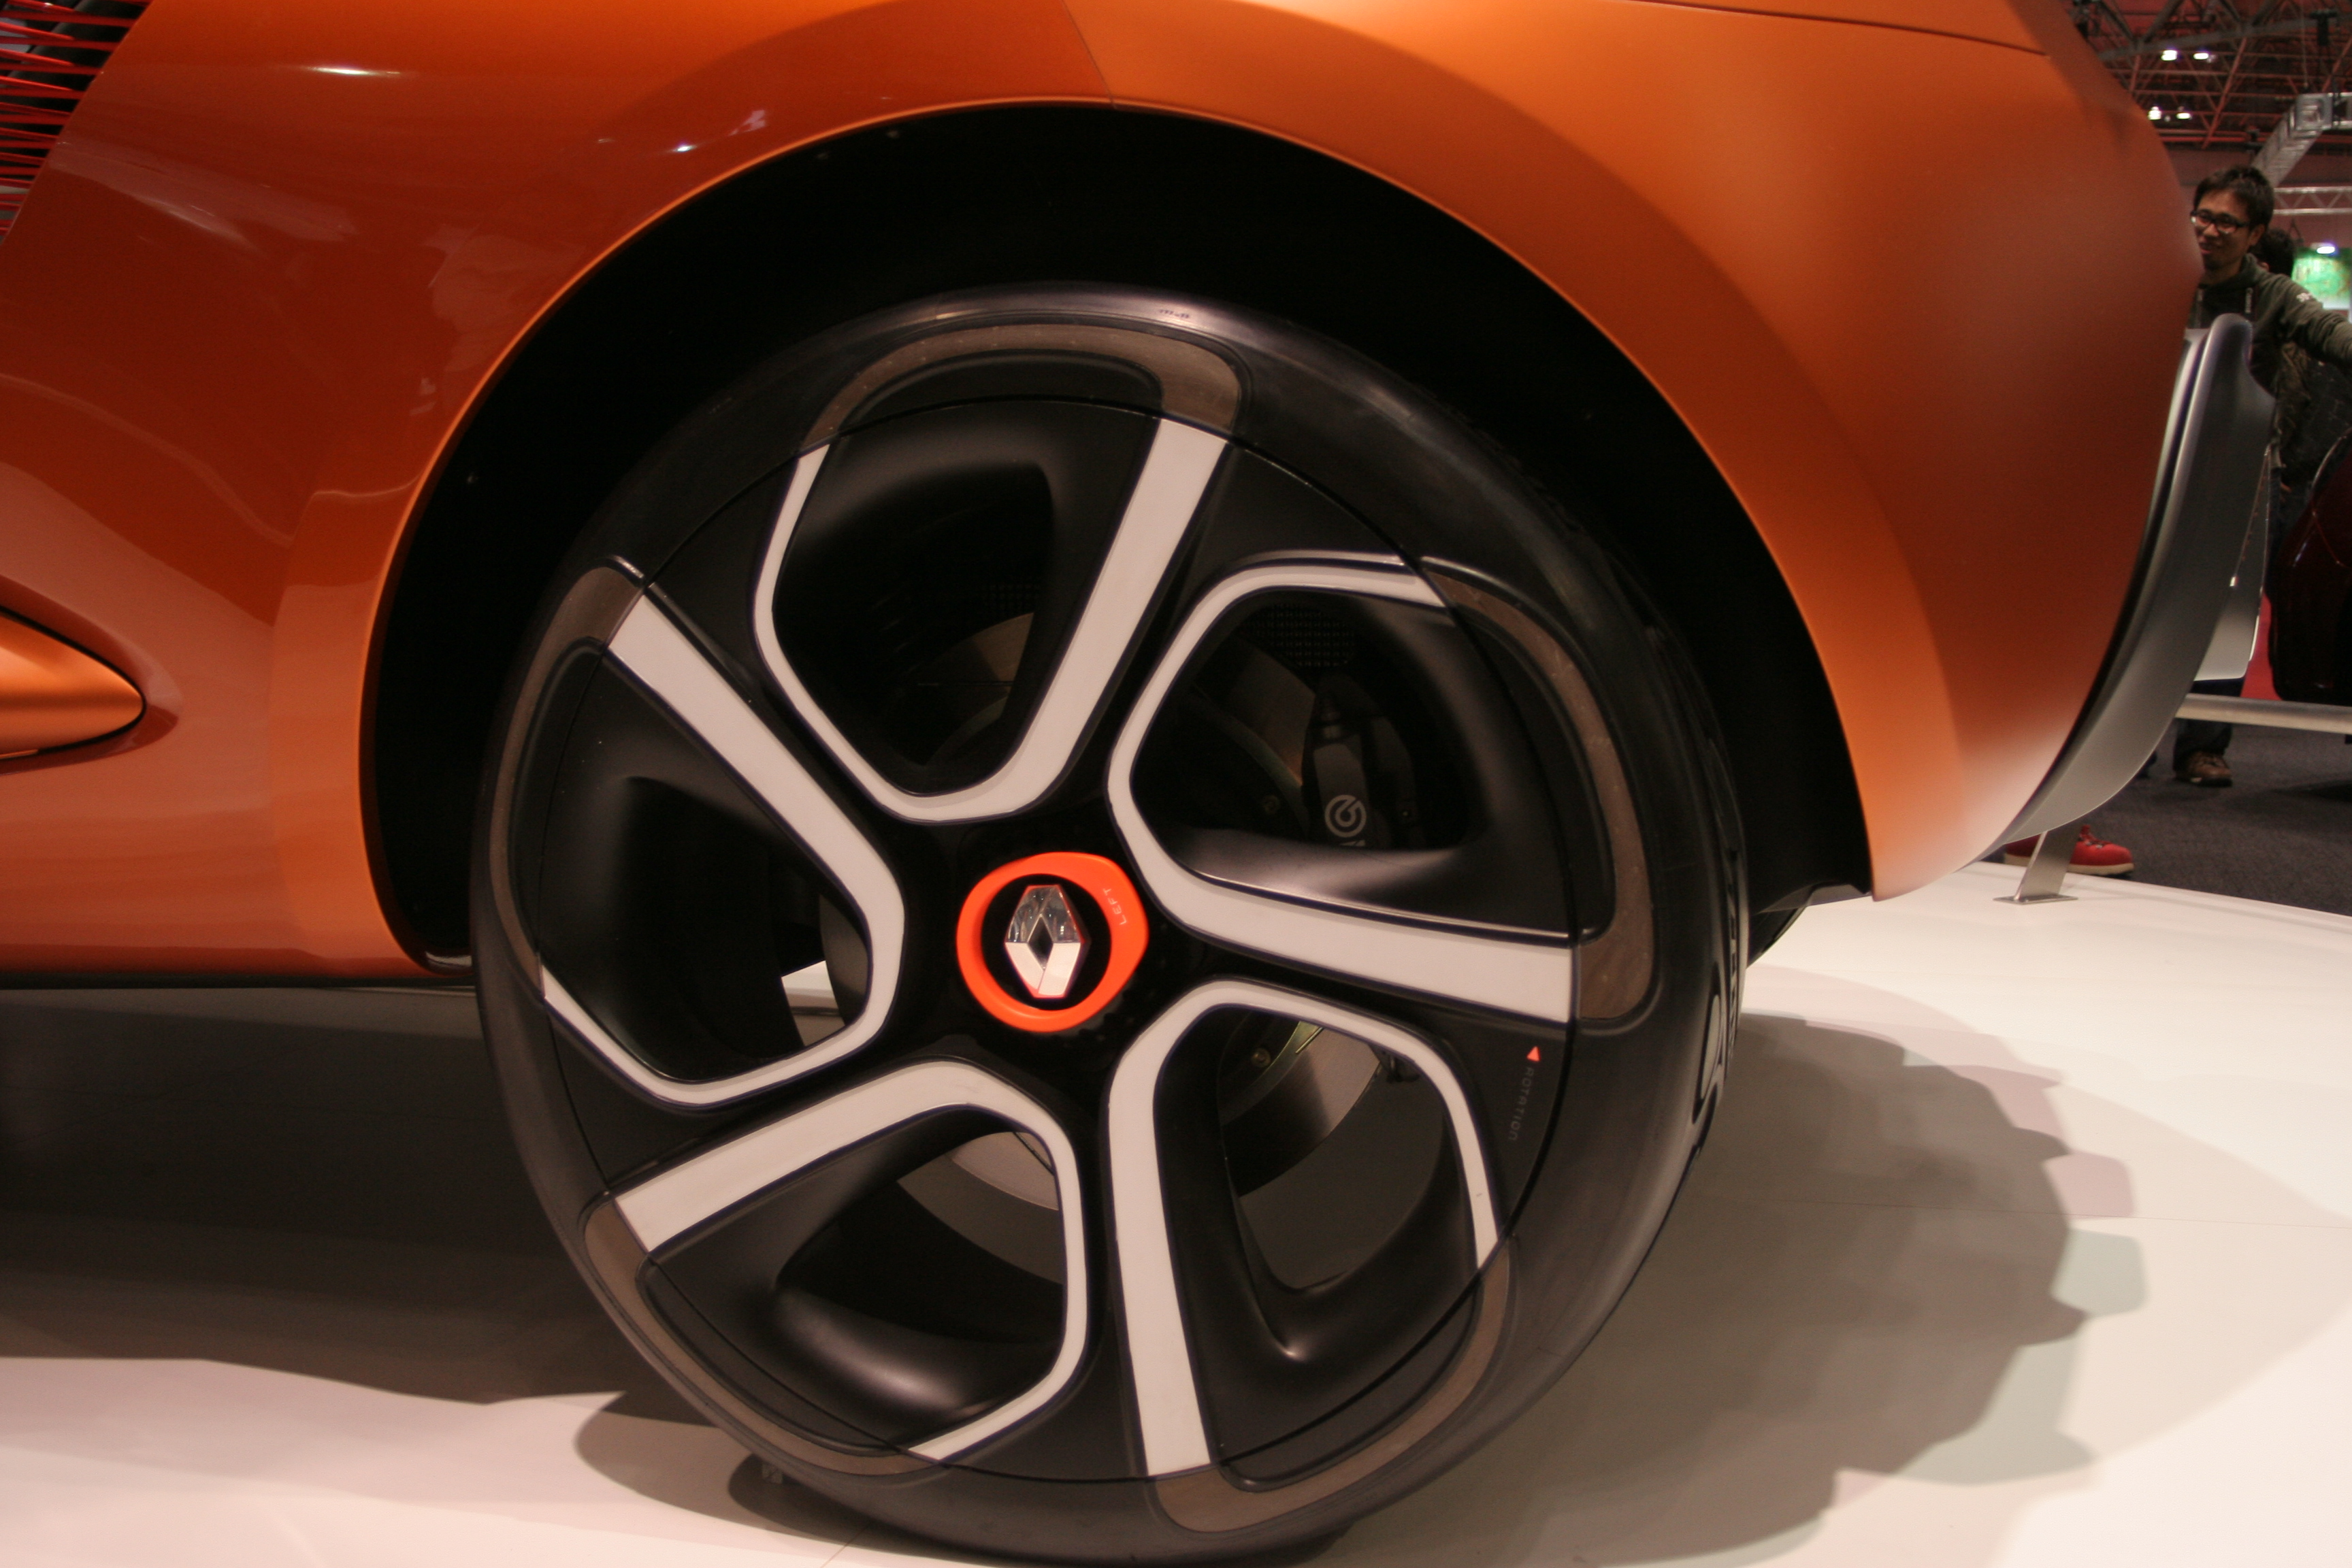 file renault captur wheel wikimedia commons